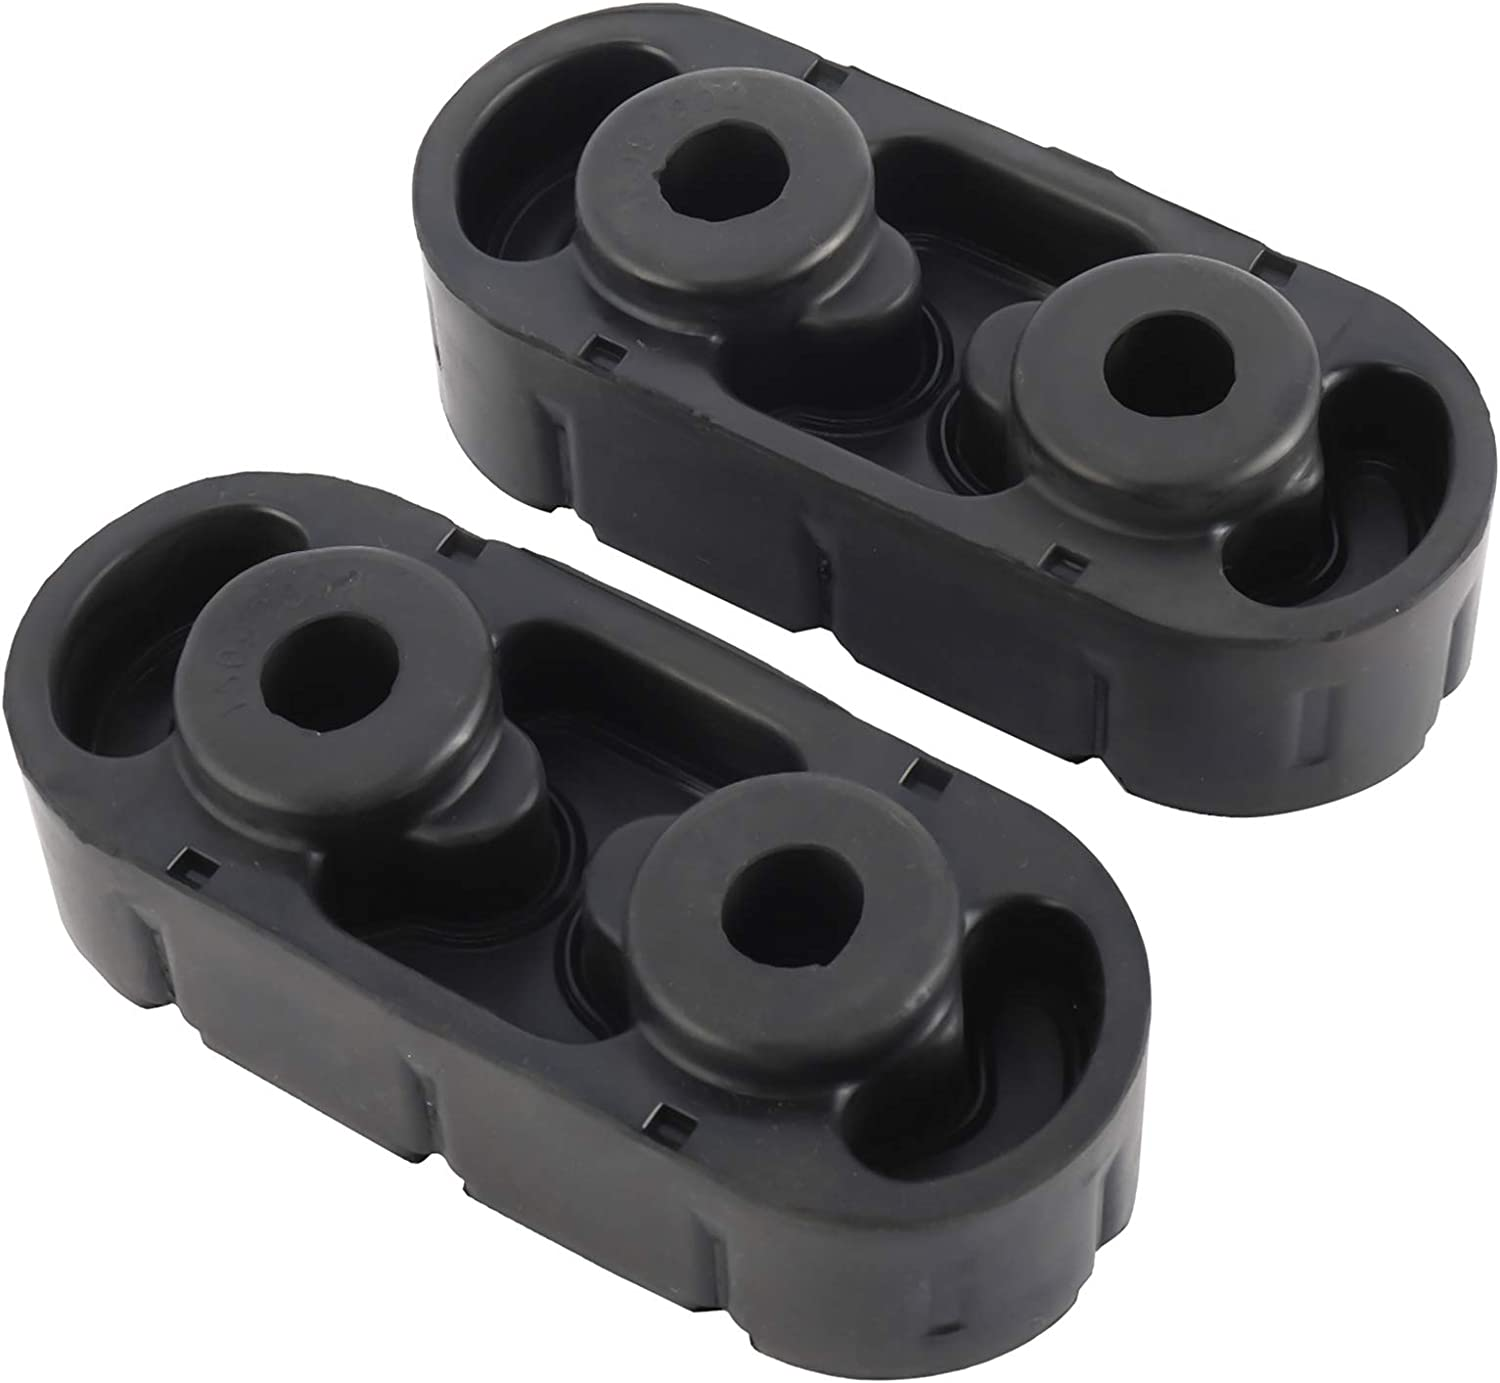 NovelBee 2 Pack of Rubber Exhaust Insulators Hanger Reduces Vibration Compatible with Chevy GMC Cadillac Escalade 15092802